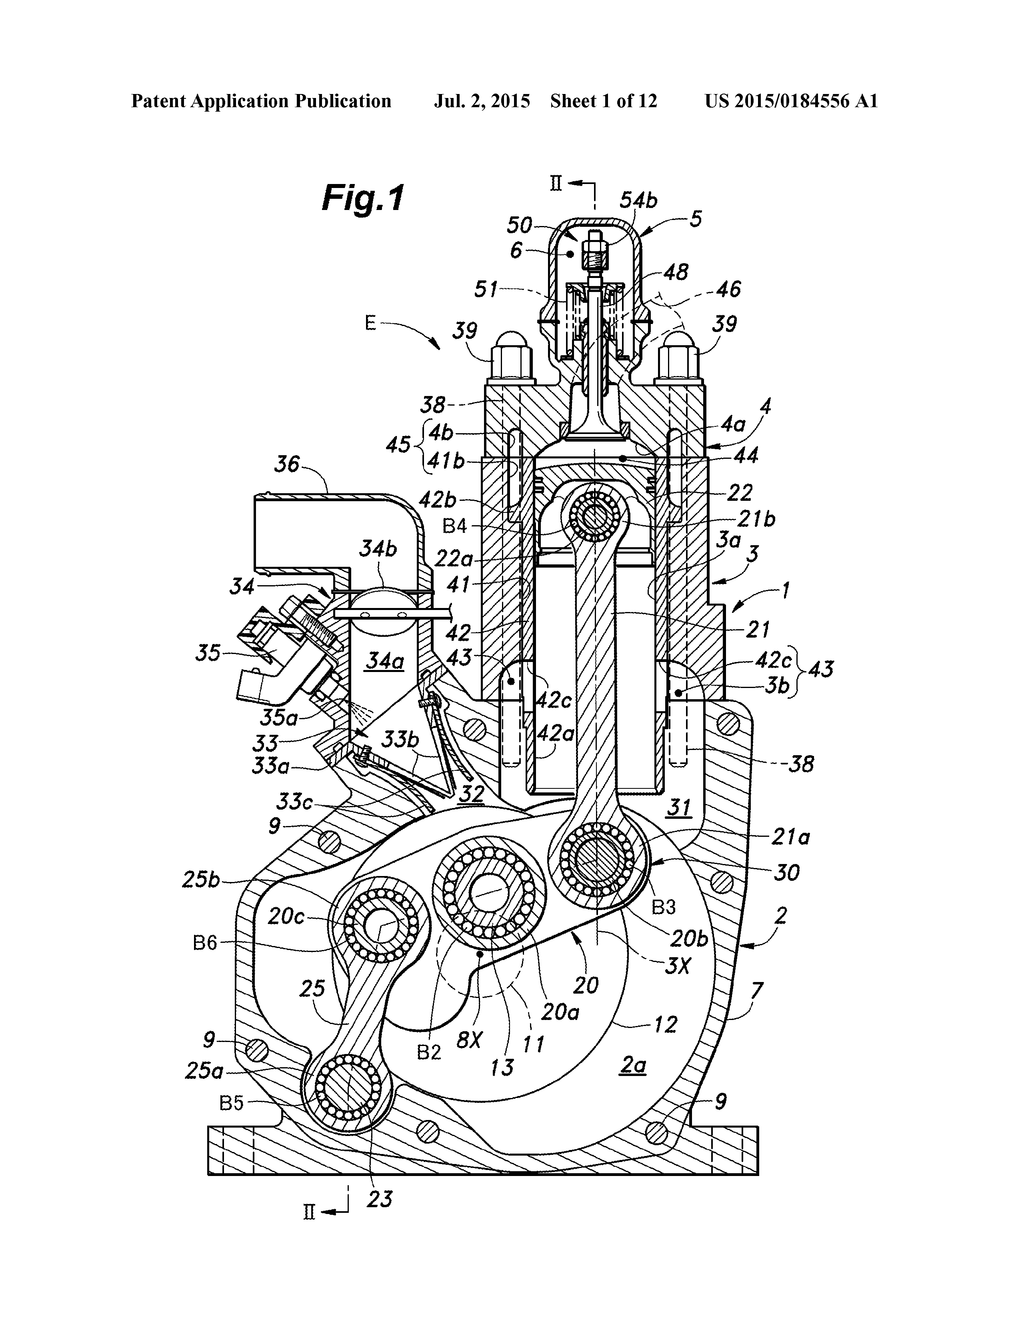 variable valve actuating mechanism for ohv engine diagram rh patentsencyclopedia com Intek OHV Engine Parts Diagram Briggs and Stratton OHV Engine Parts Diagrams